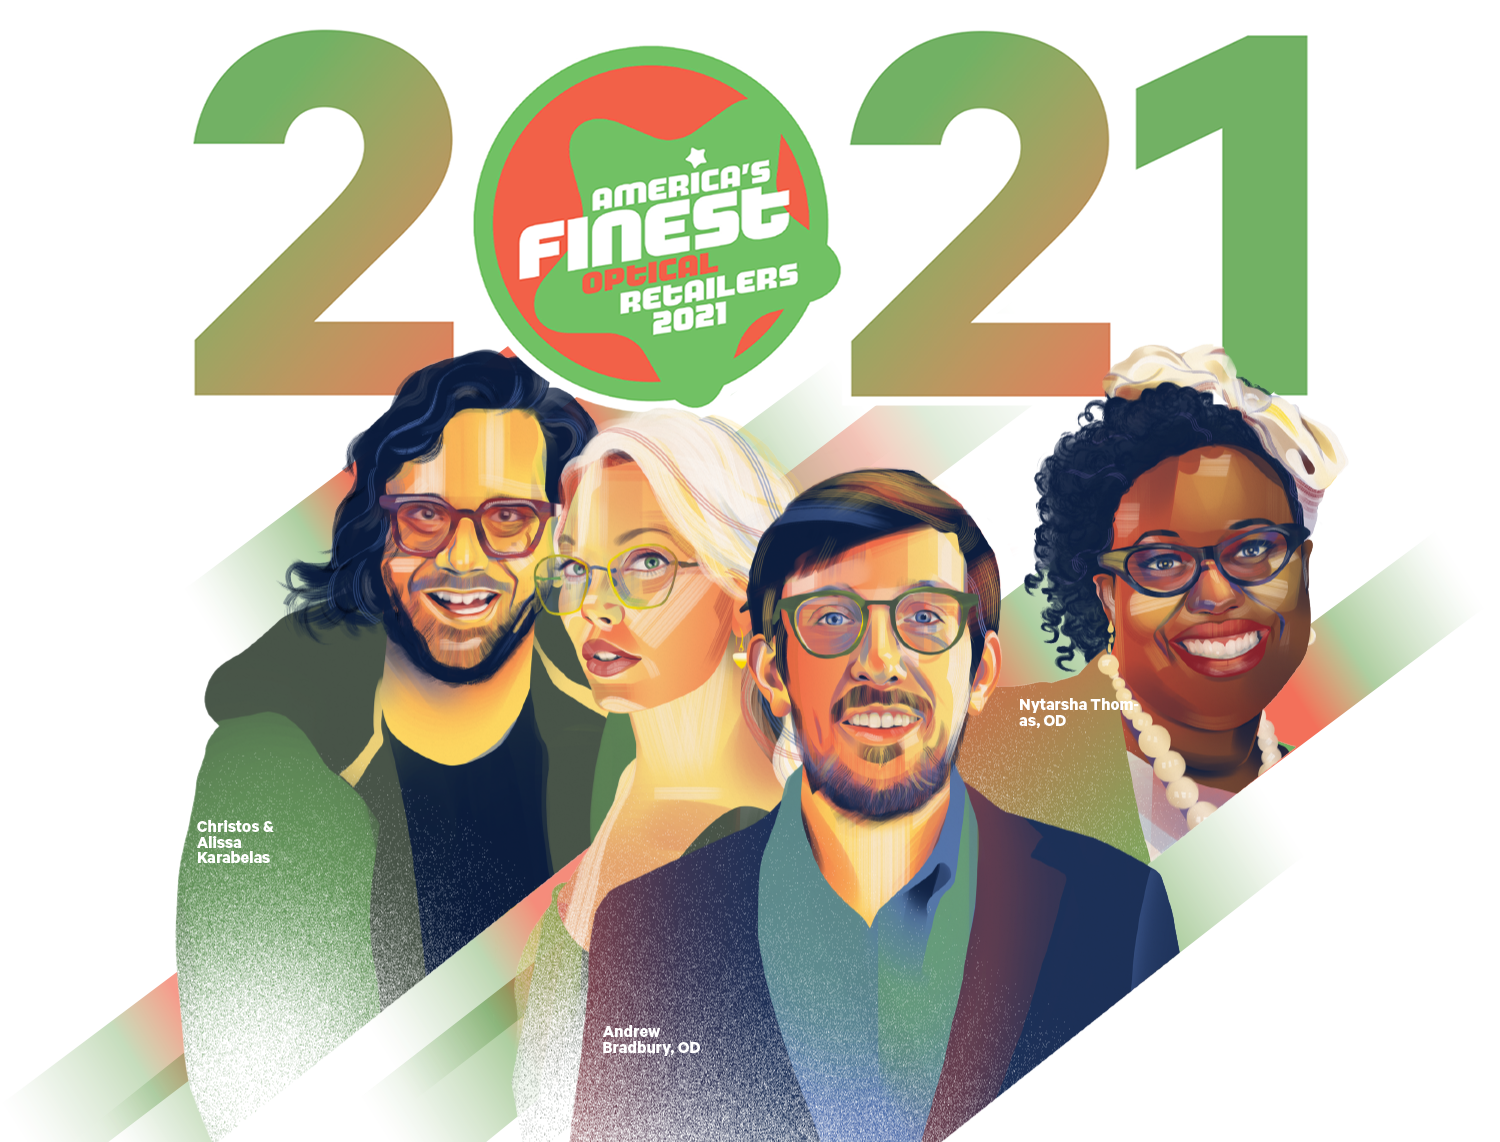 America's Finest Optical Retailers 2021 – Winners Revealed!